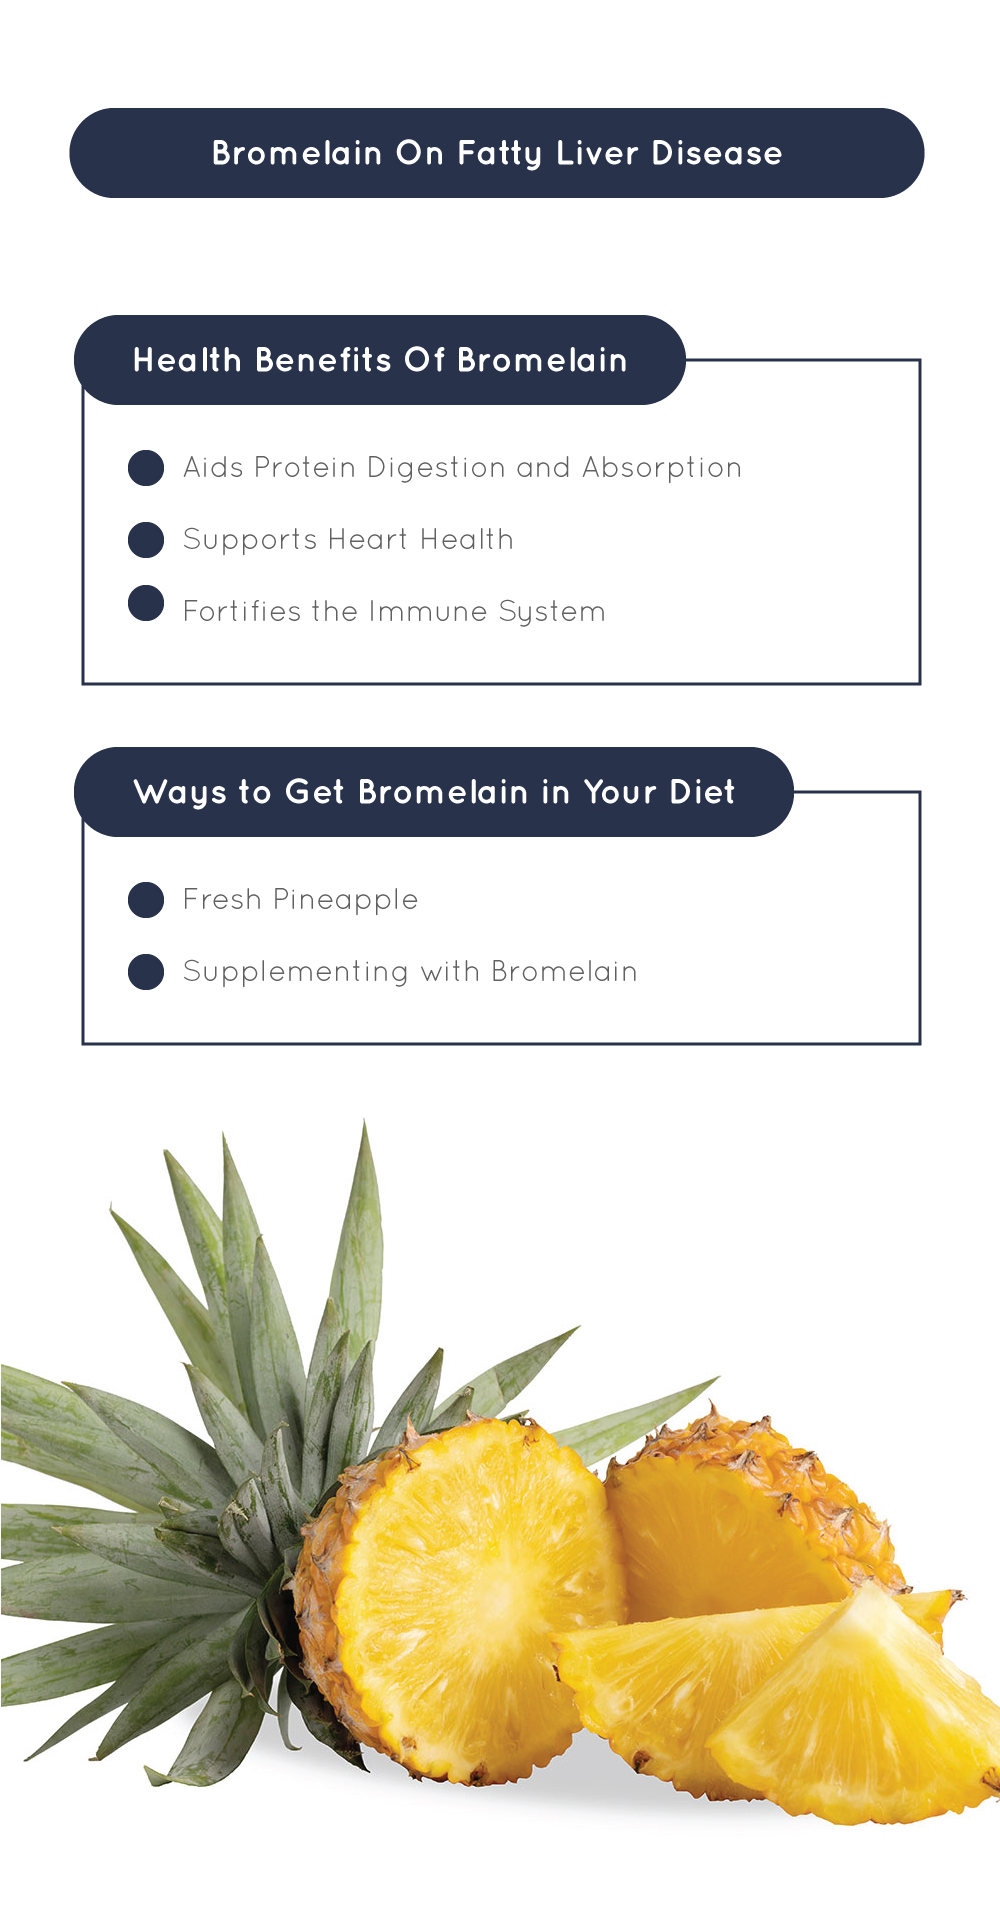 Bromelain On Fatty Liver Disease